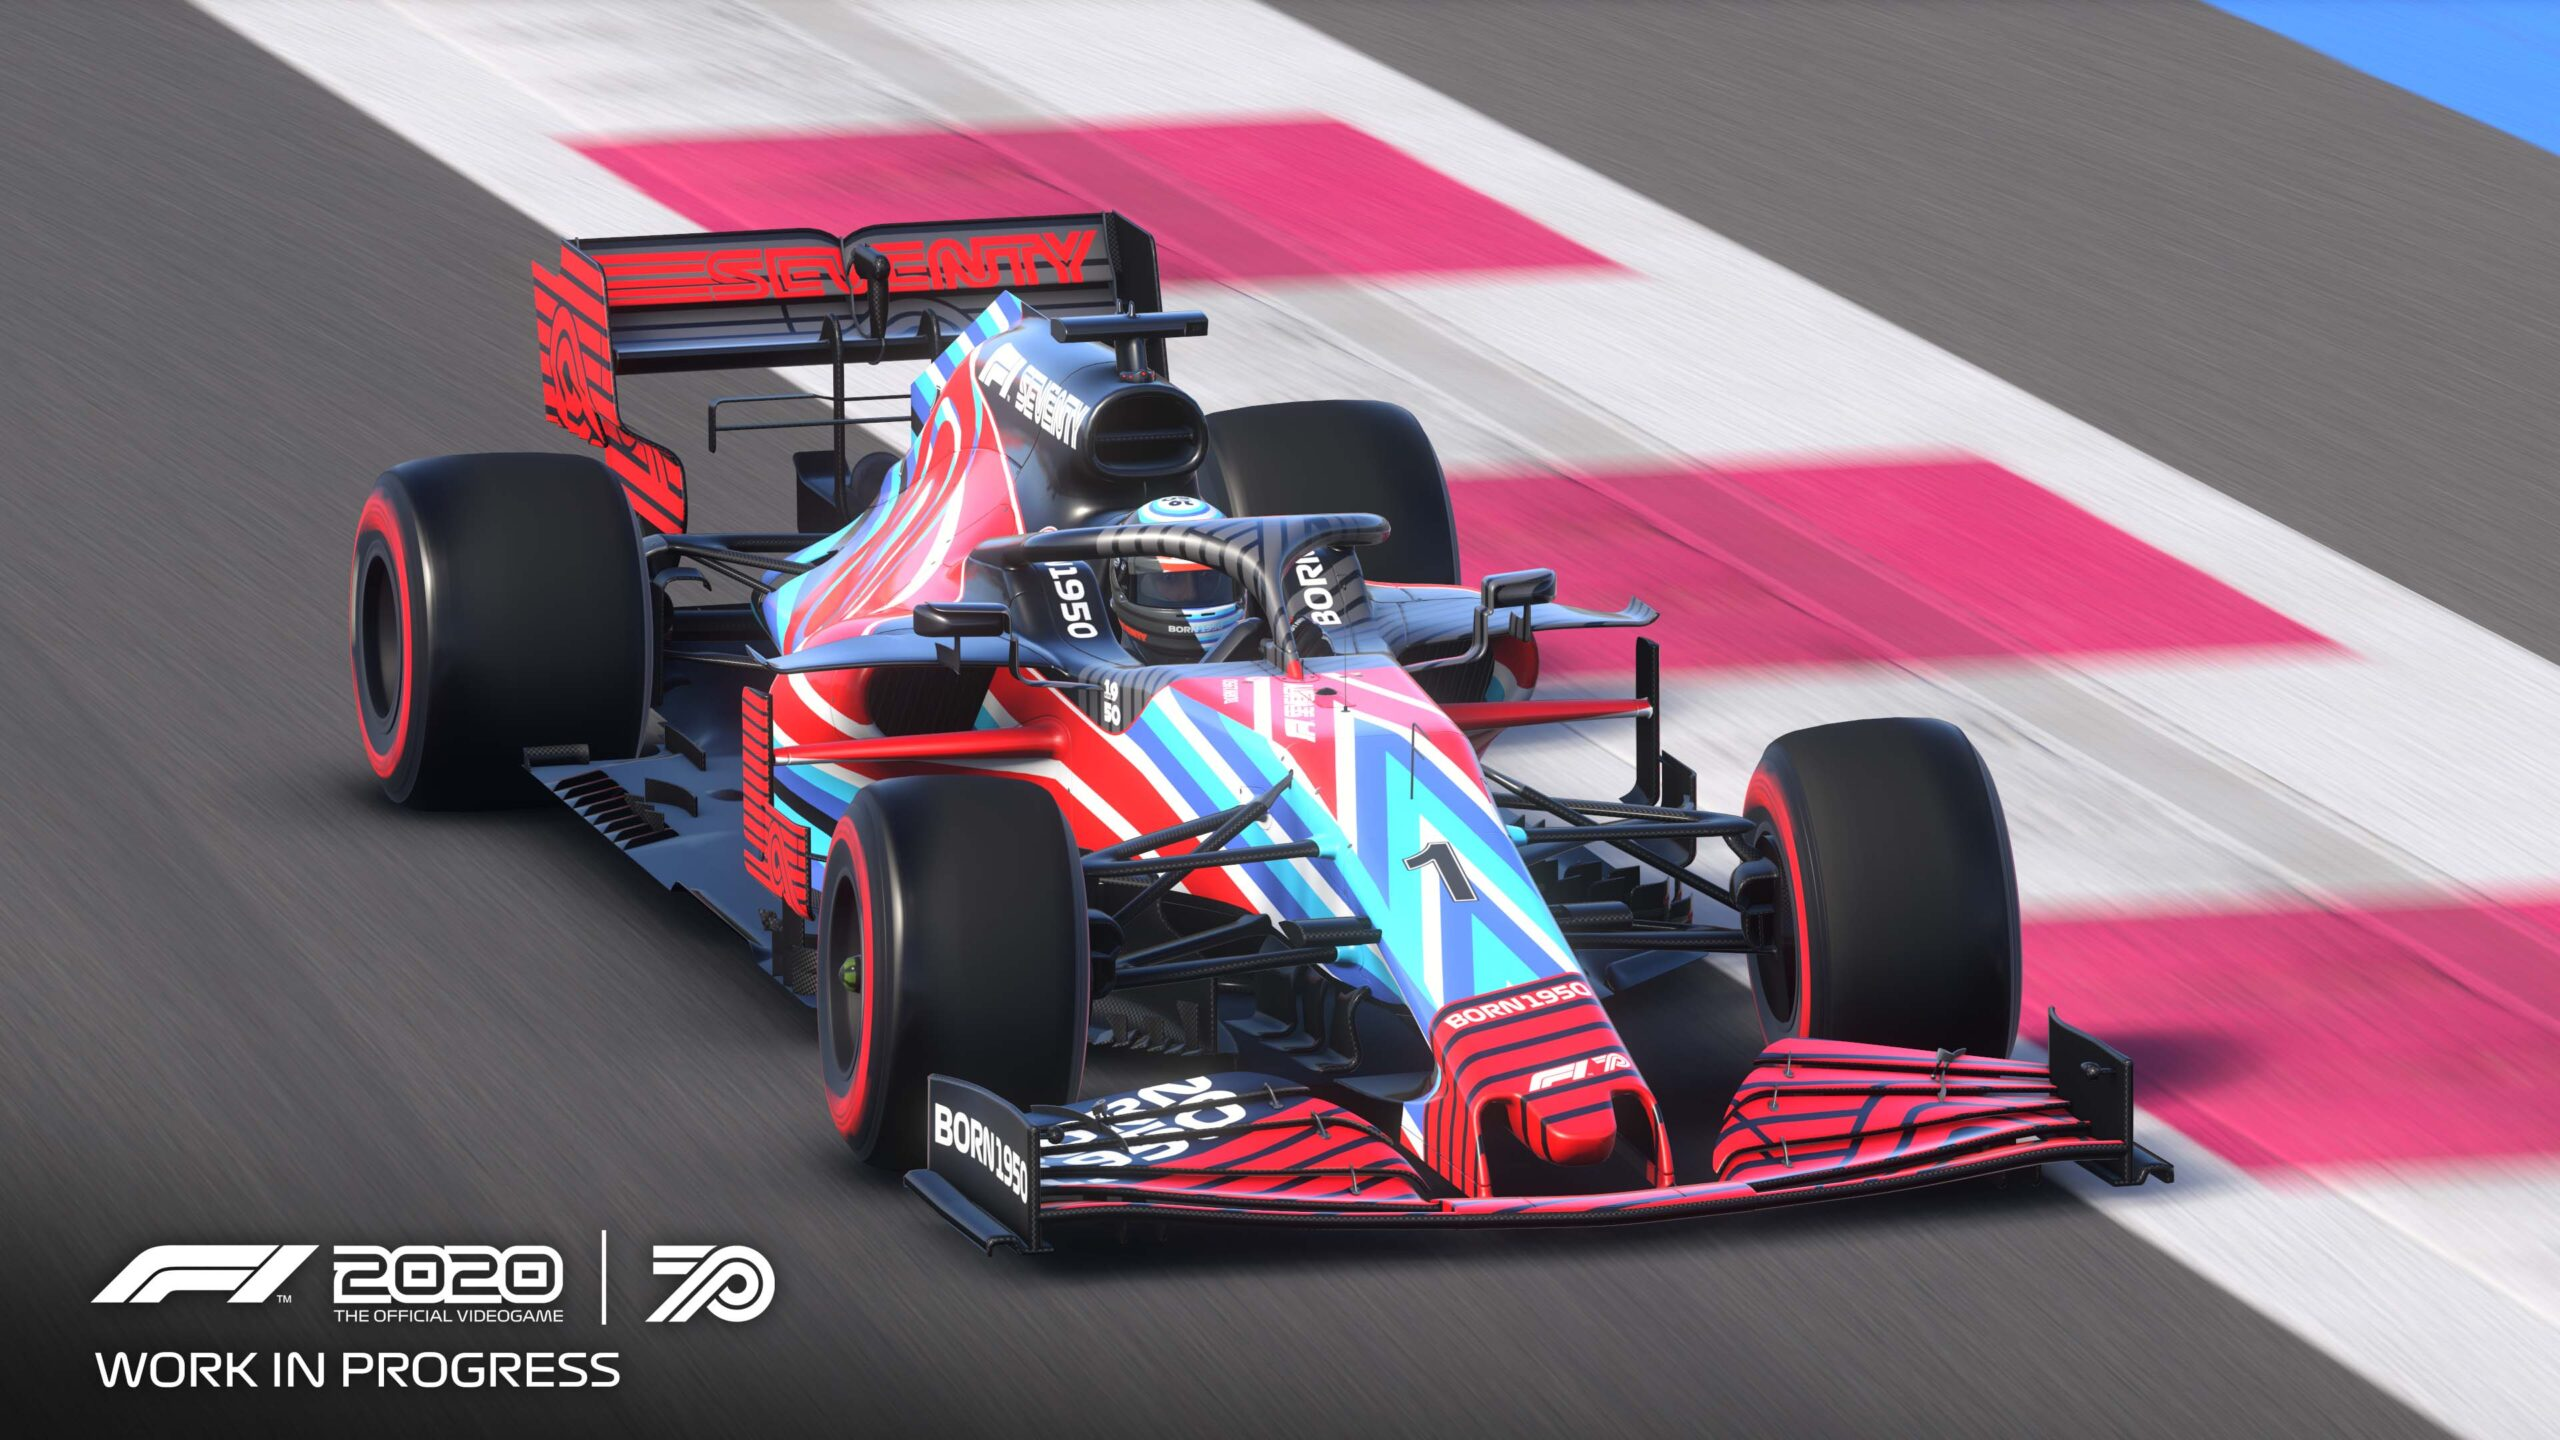 Automobile, Automobile Sim, Codemasters, F1 2020 – Seventy Edition, F1 2020 – Seventy Edition Review, Formula One, Formula One 2020, Formula One 2020 Review, Racing, Rating 9/10, simulation, Sports, Xbox One, Xbox One Review